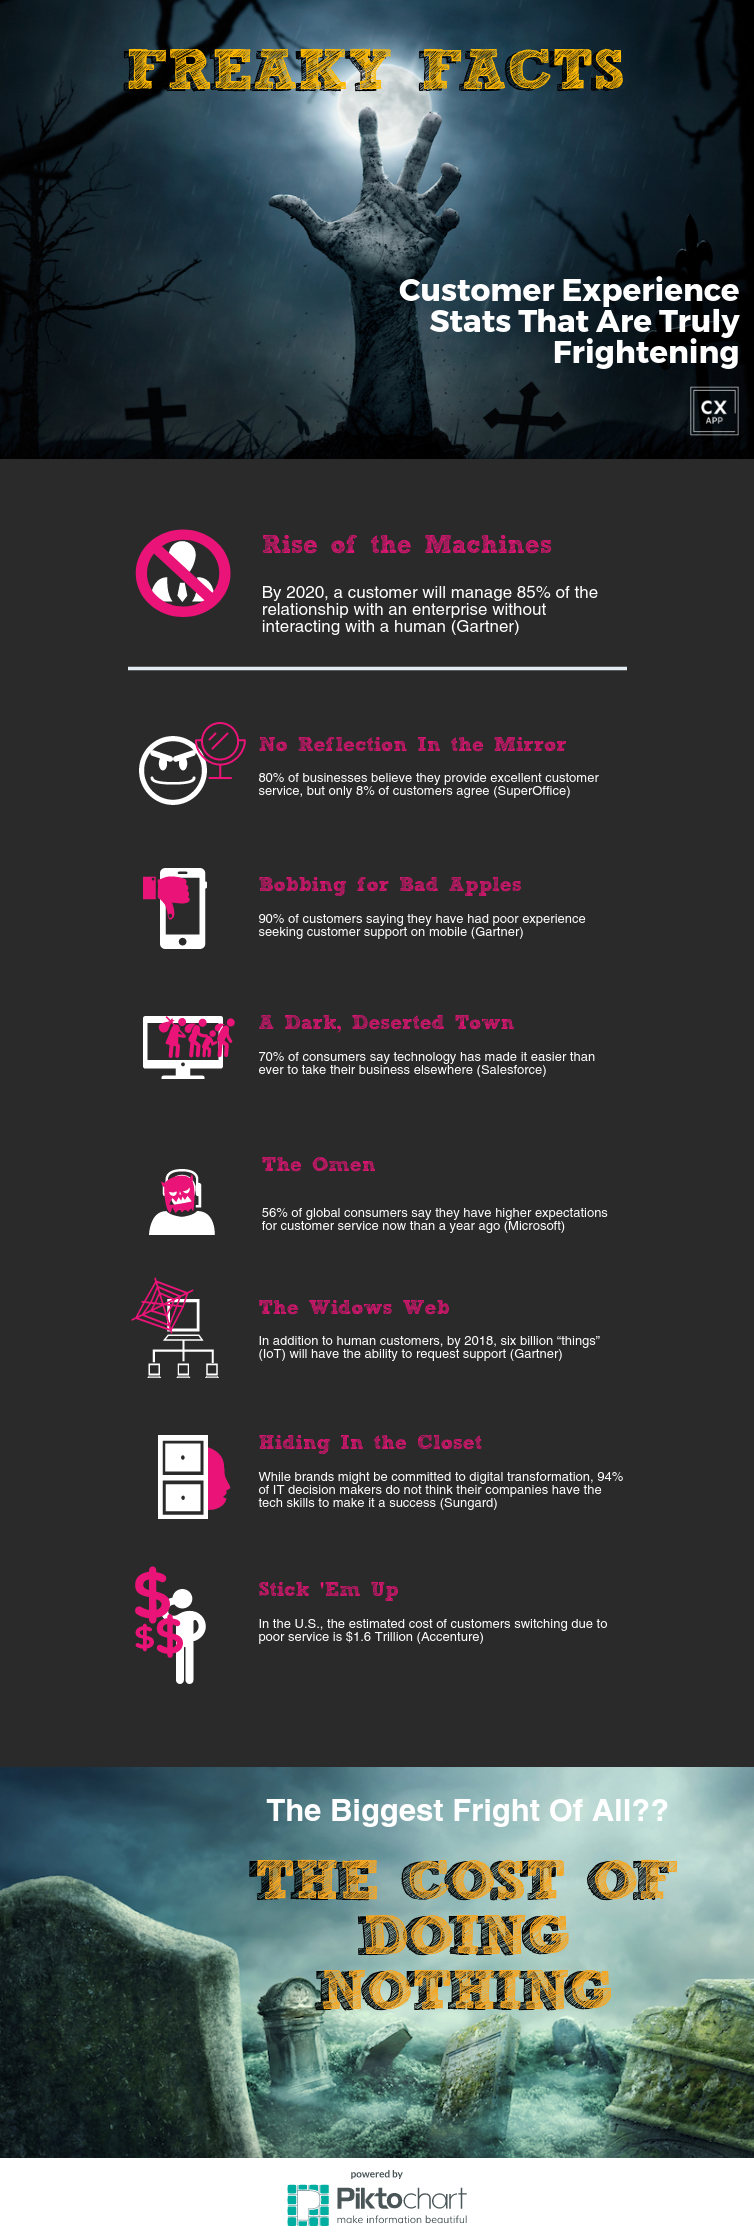 Boo! Customer experience facts that can be frightening